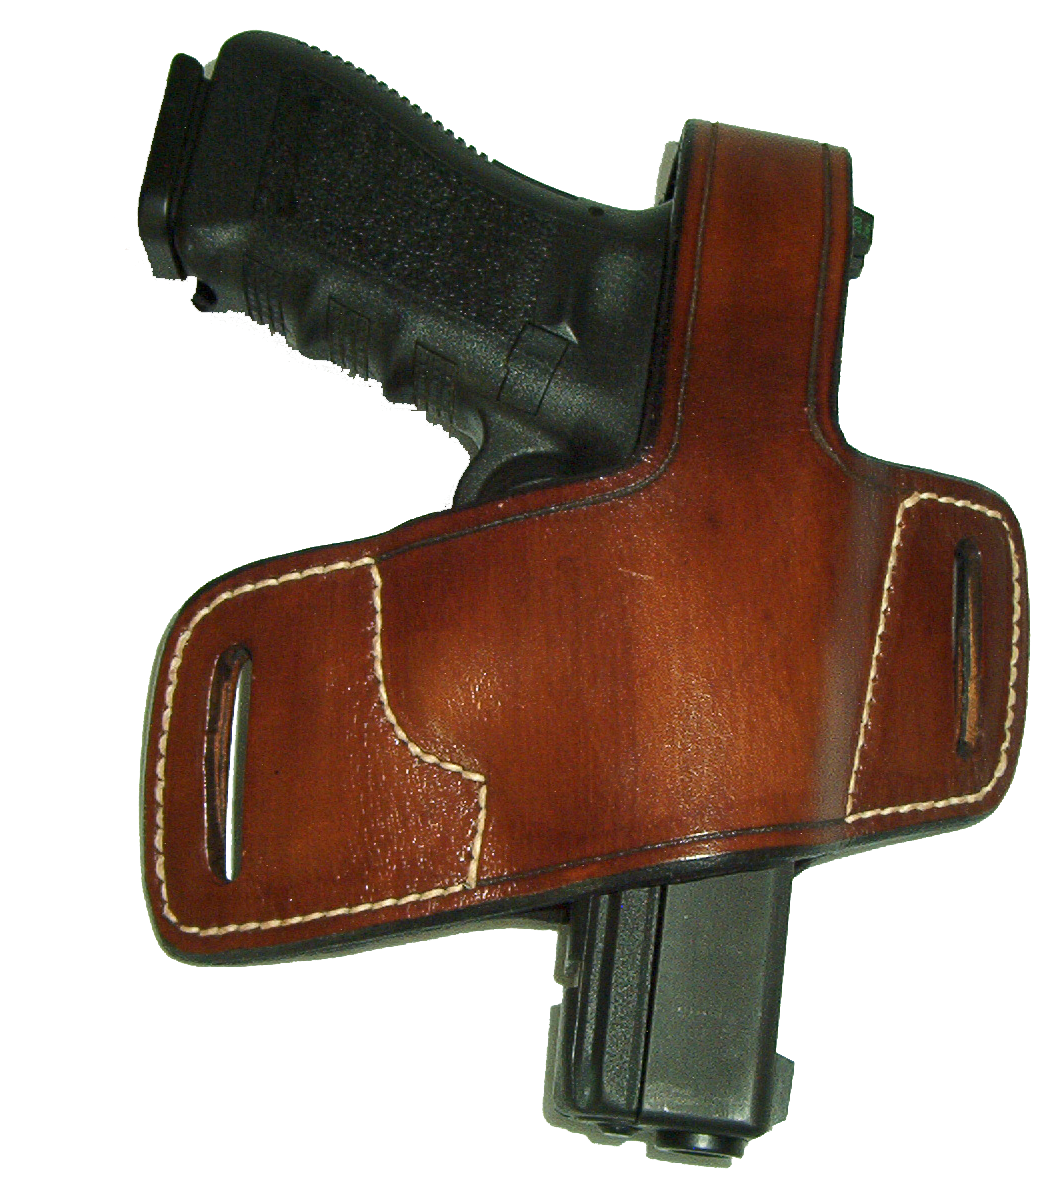 Belt Slide Holster With Thumb Break Image